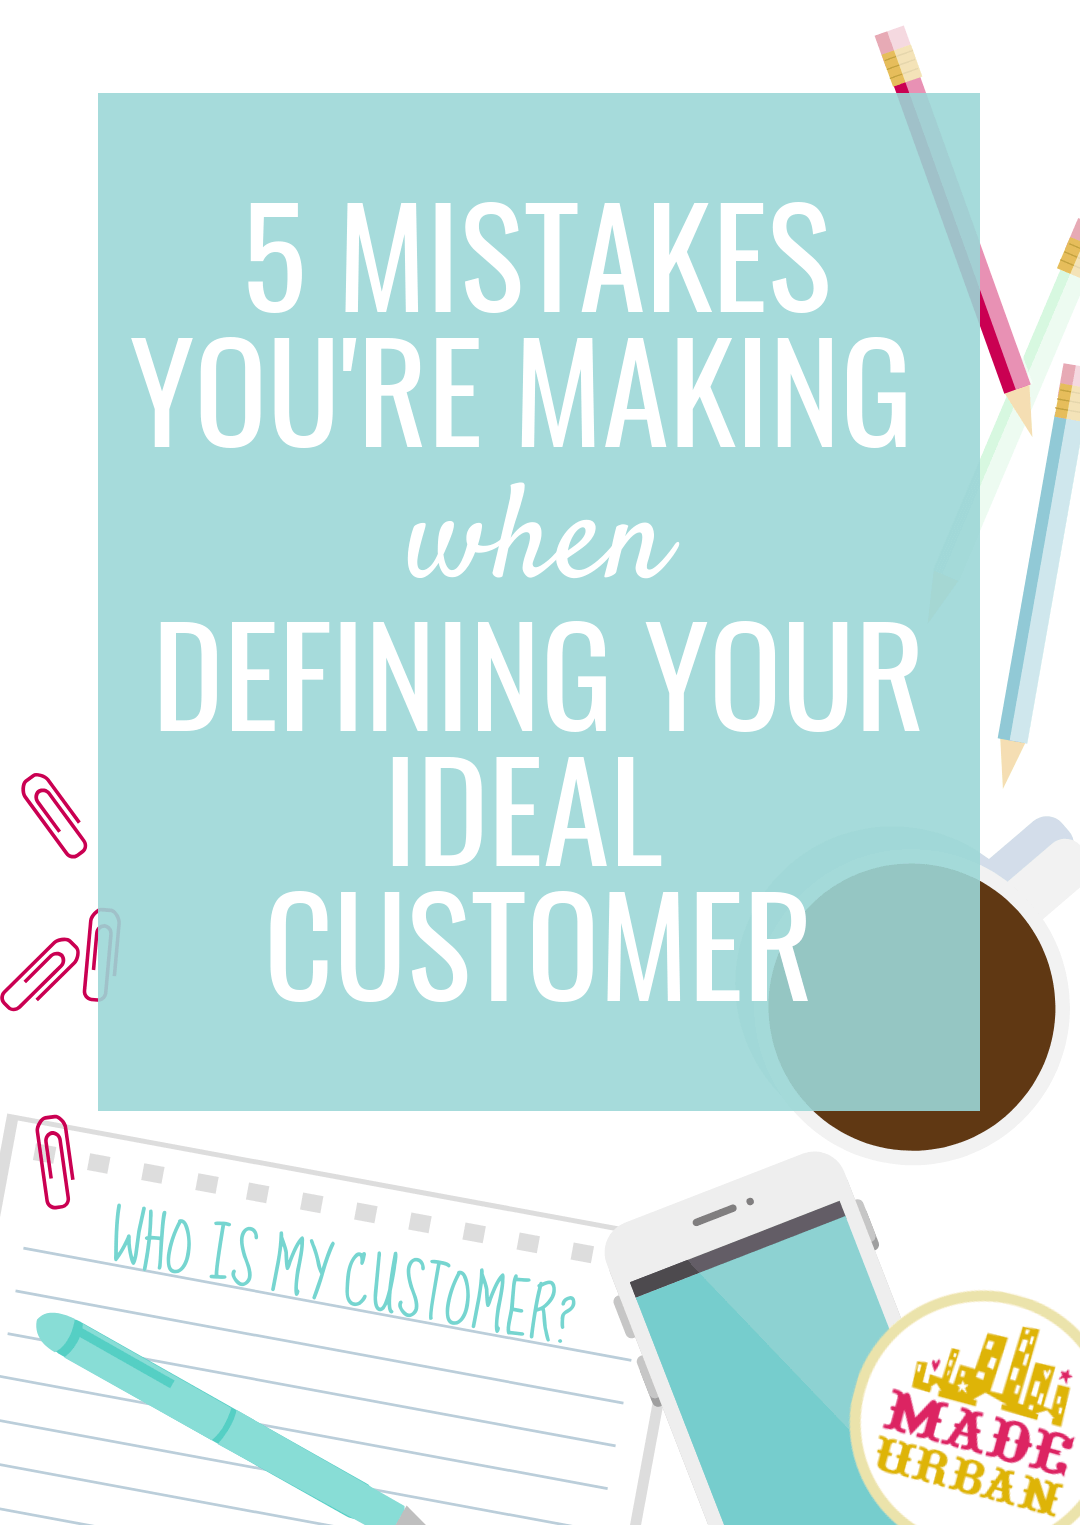 5 Common Mistakes of Ideal Customer Profiles